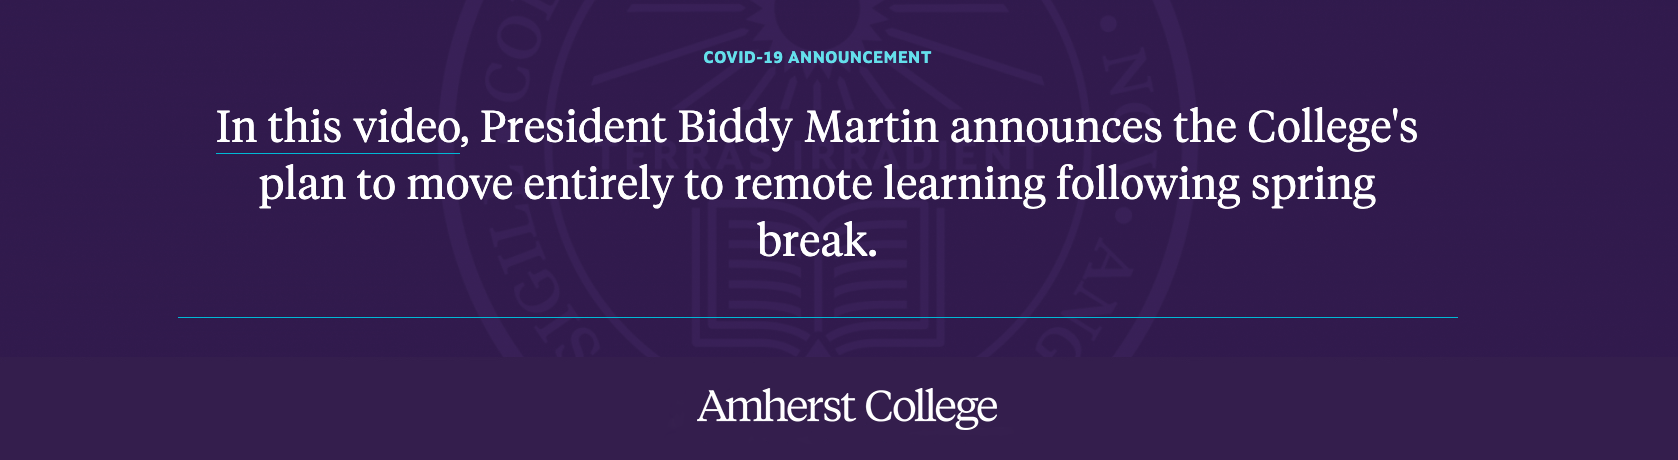 Video announcement by President Martin about moving to remote learning